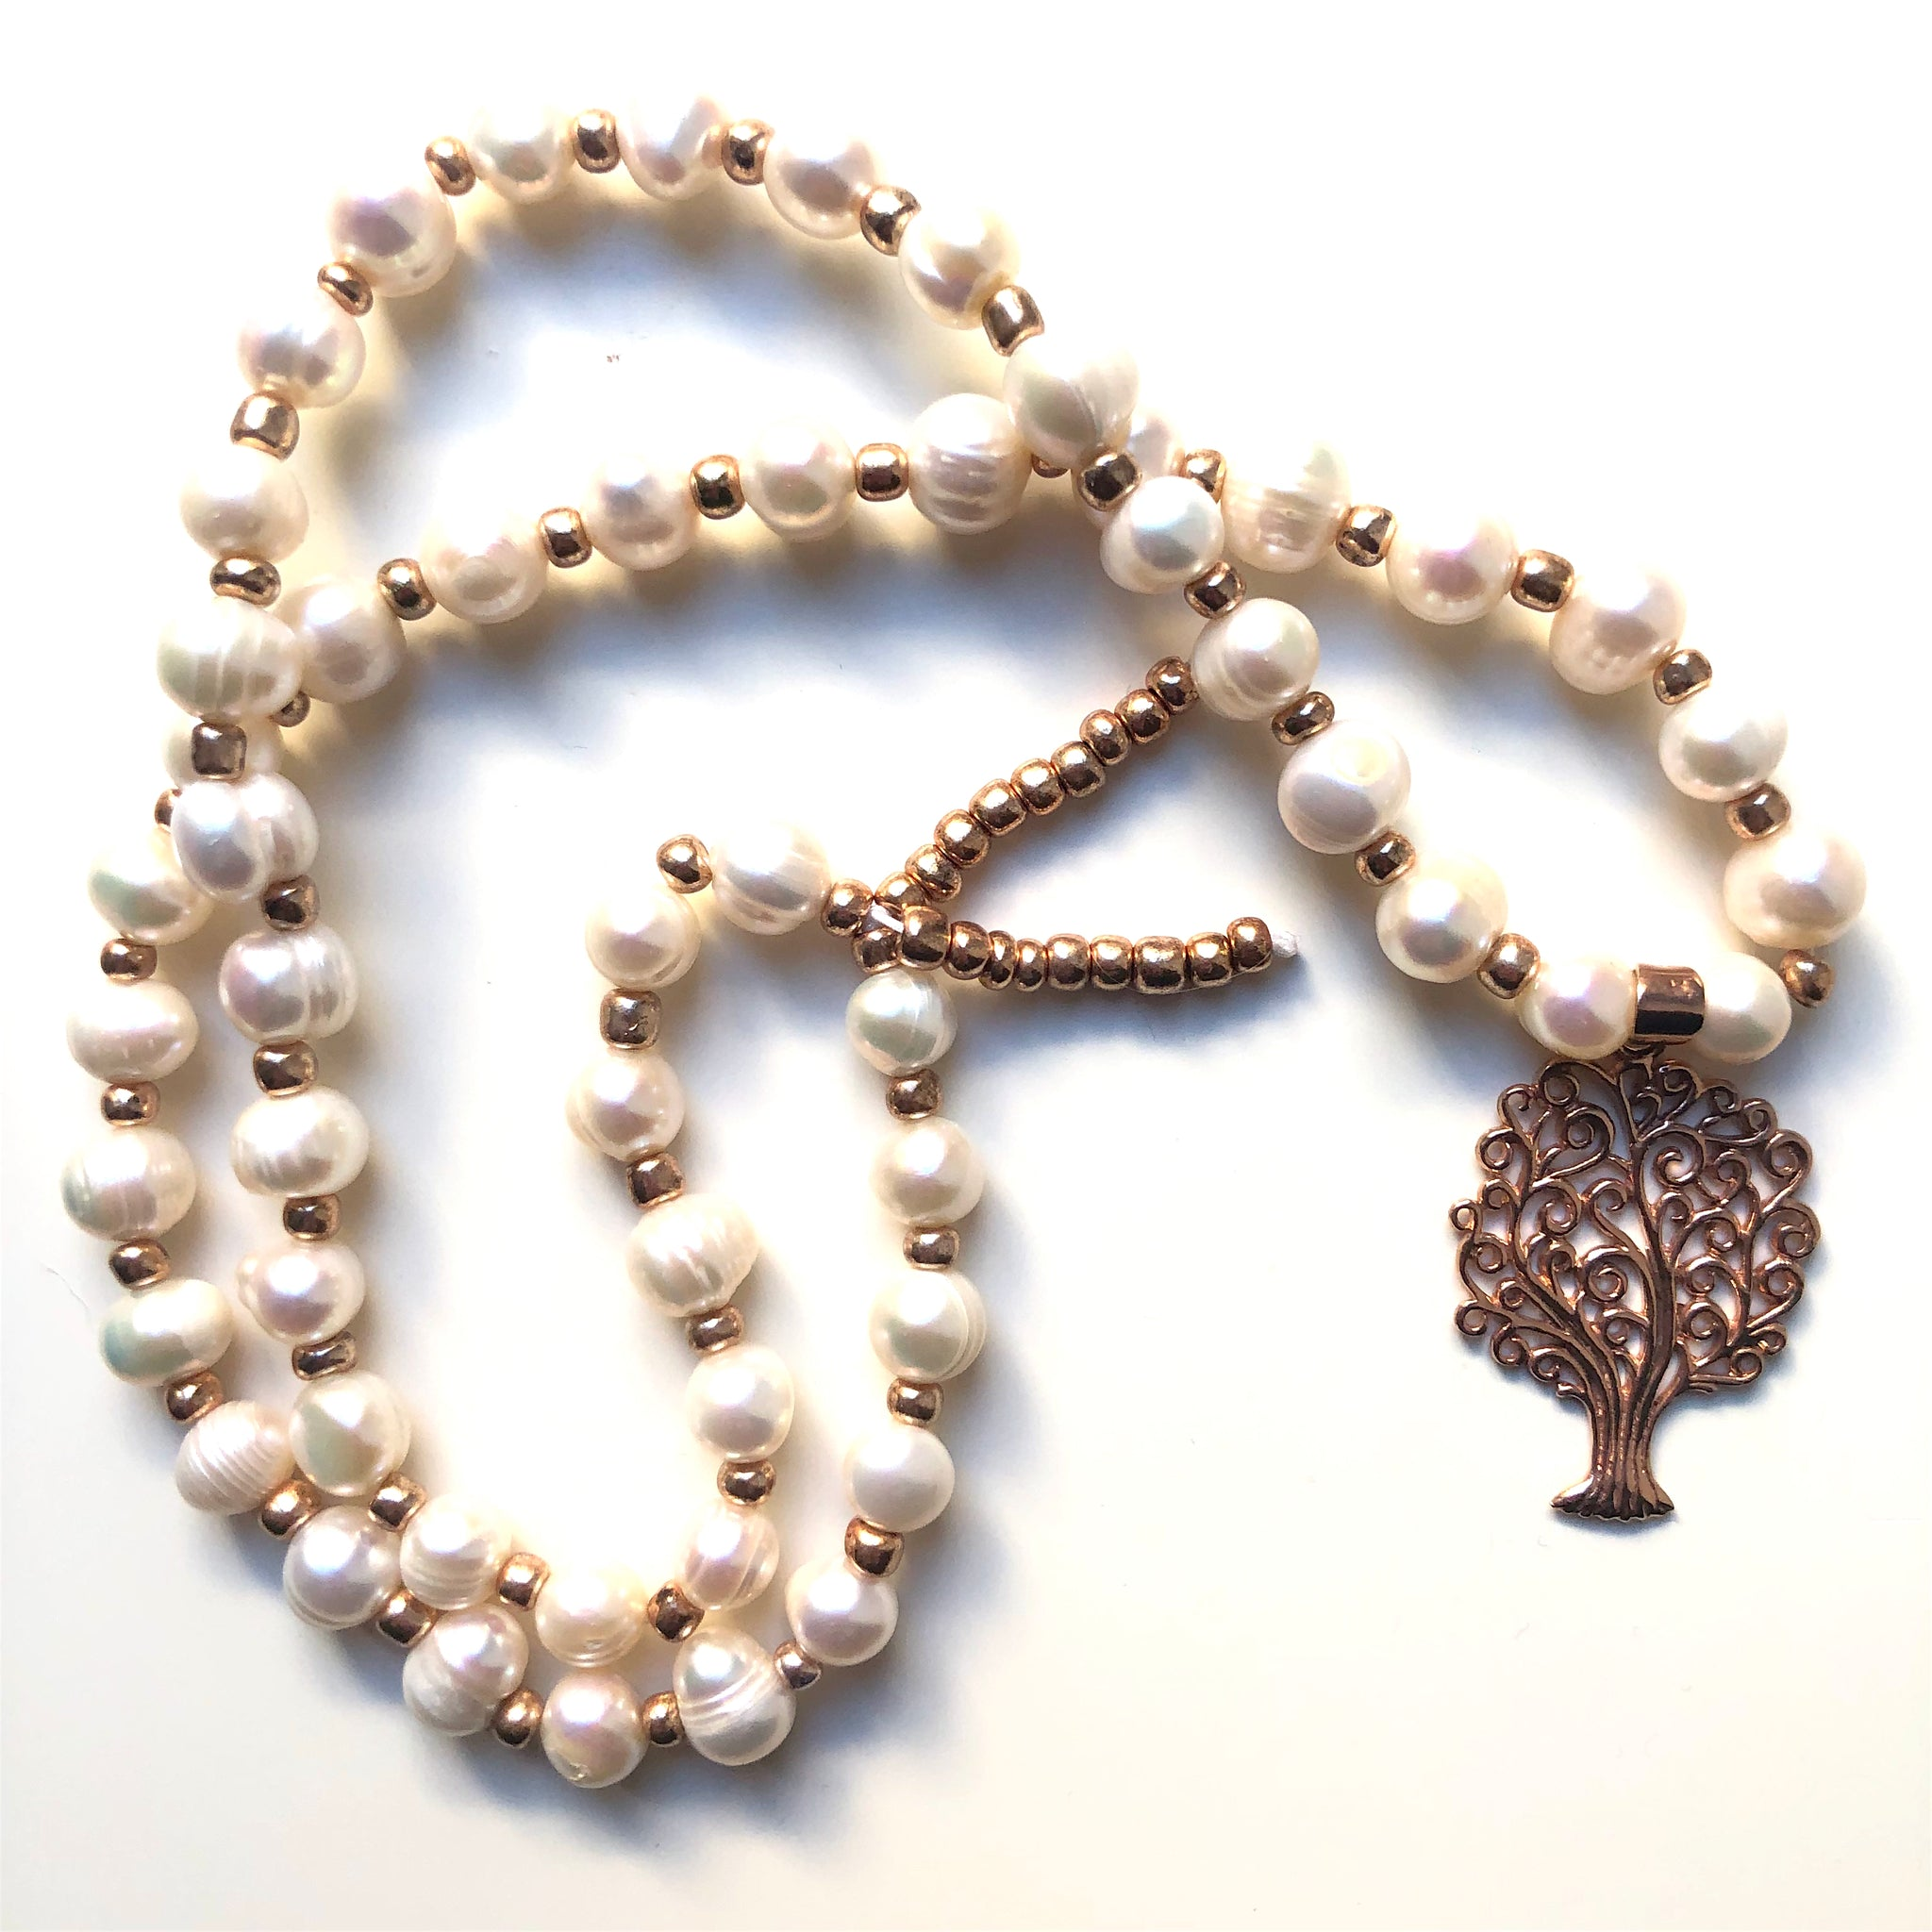 Pearl Mala Beads, 54 Mala, Mala Necklace, Yoga Jewelry, Meditation Beads